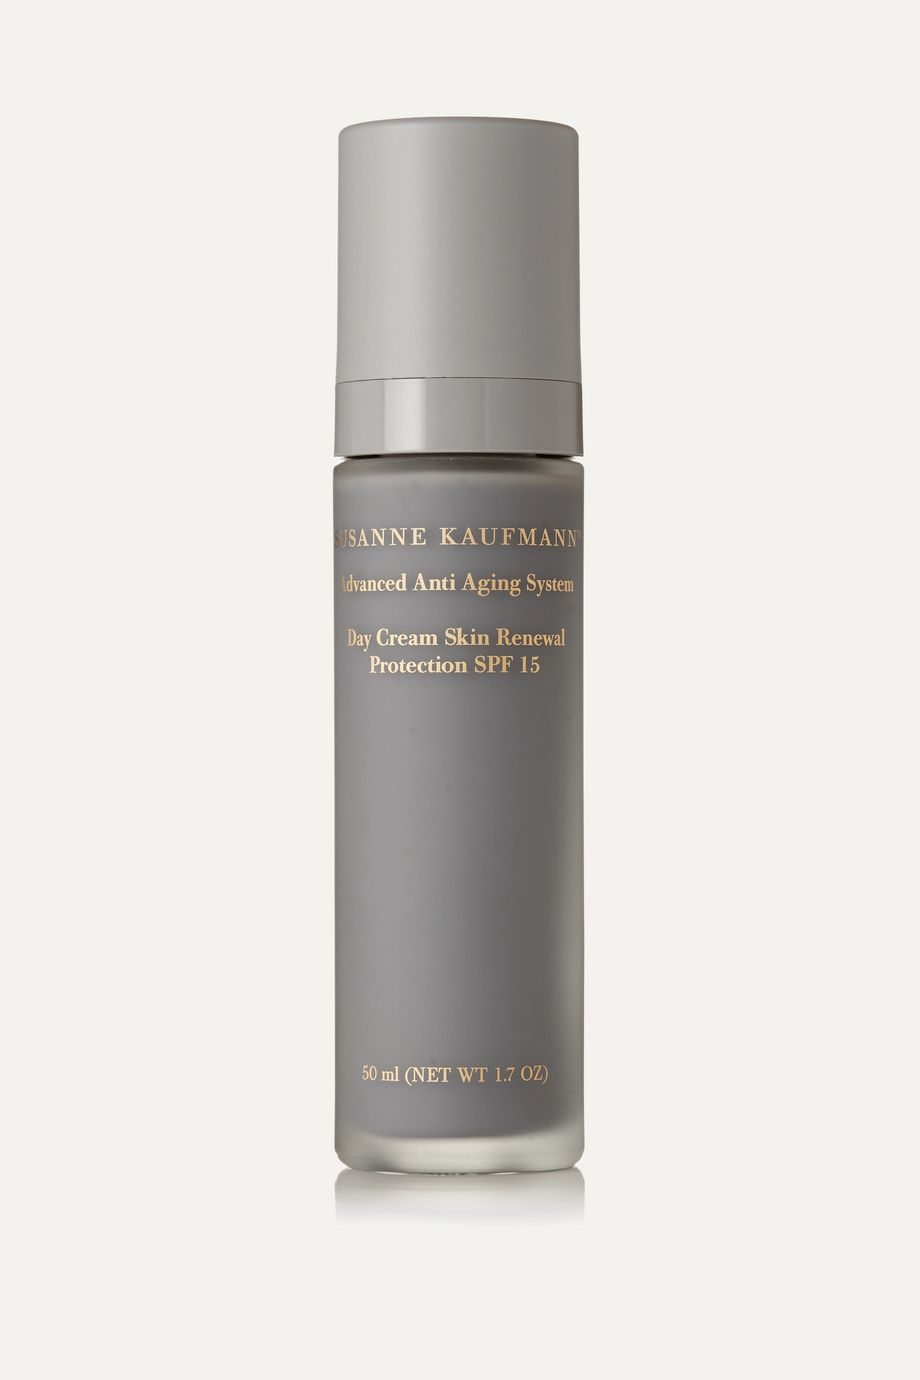 Susanne Kaufmann Day Cream Skin Renewal Protection SPF15, 50ml